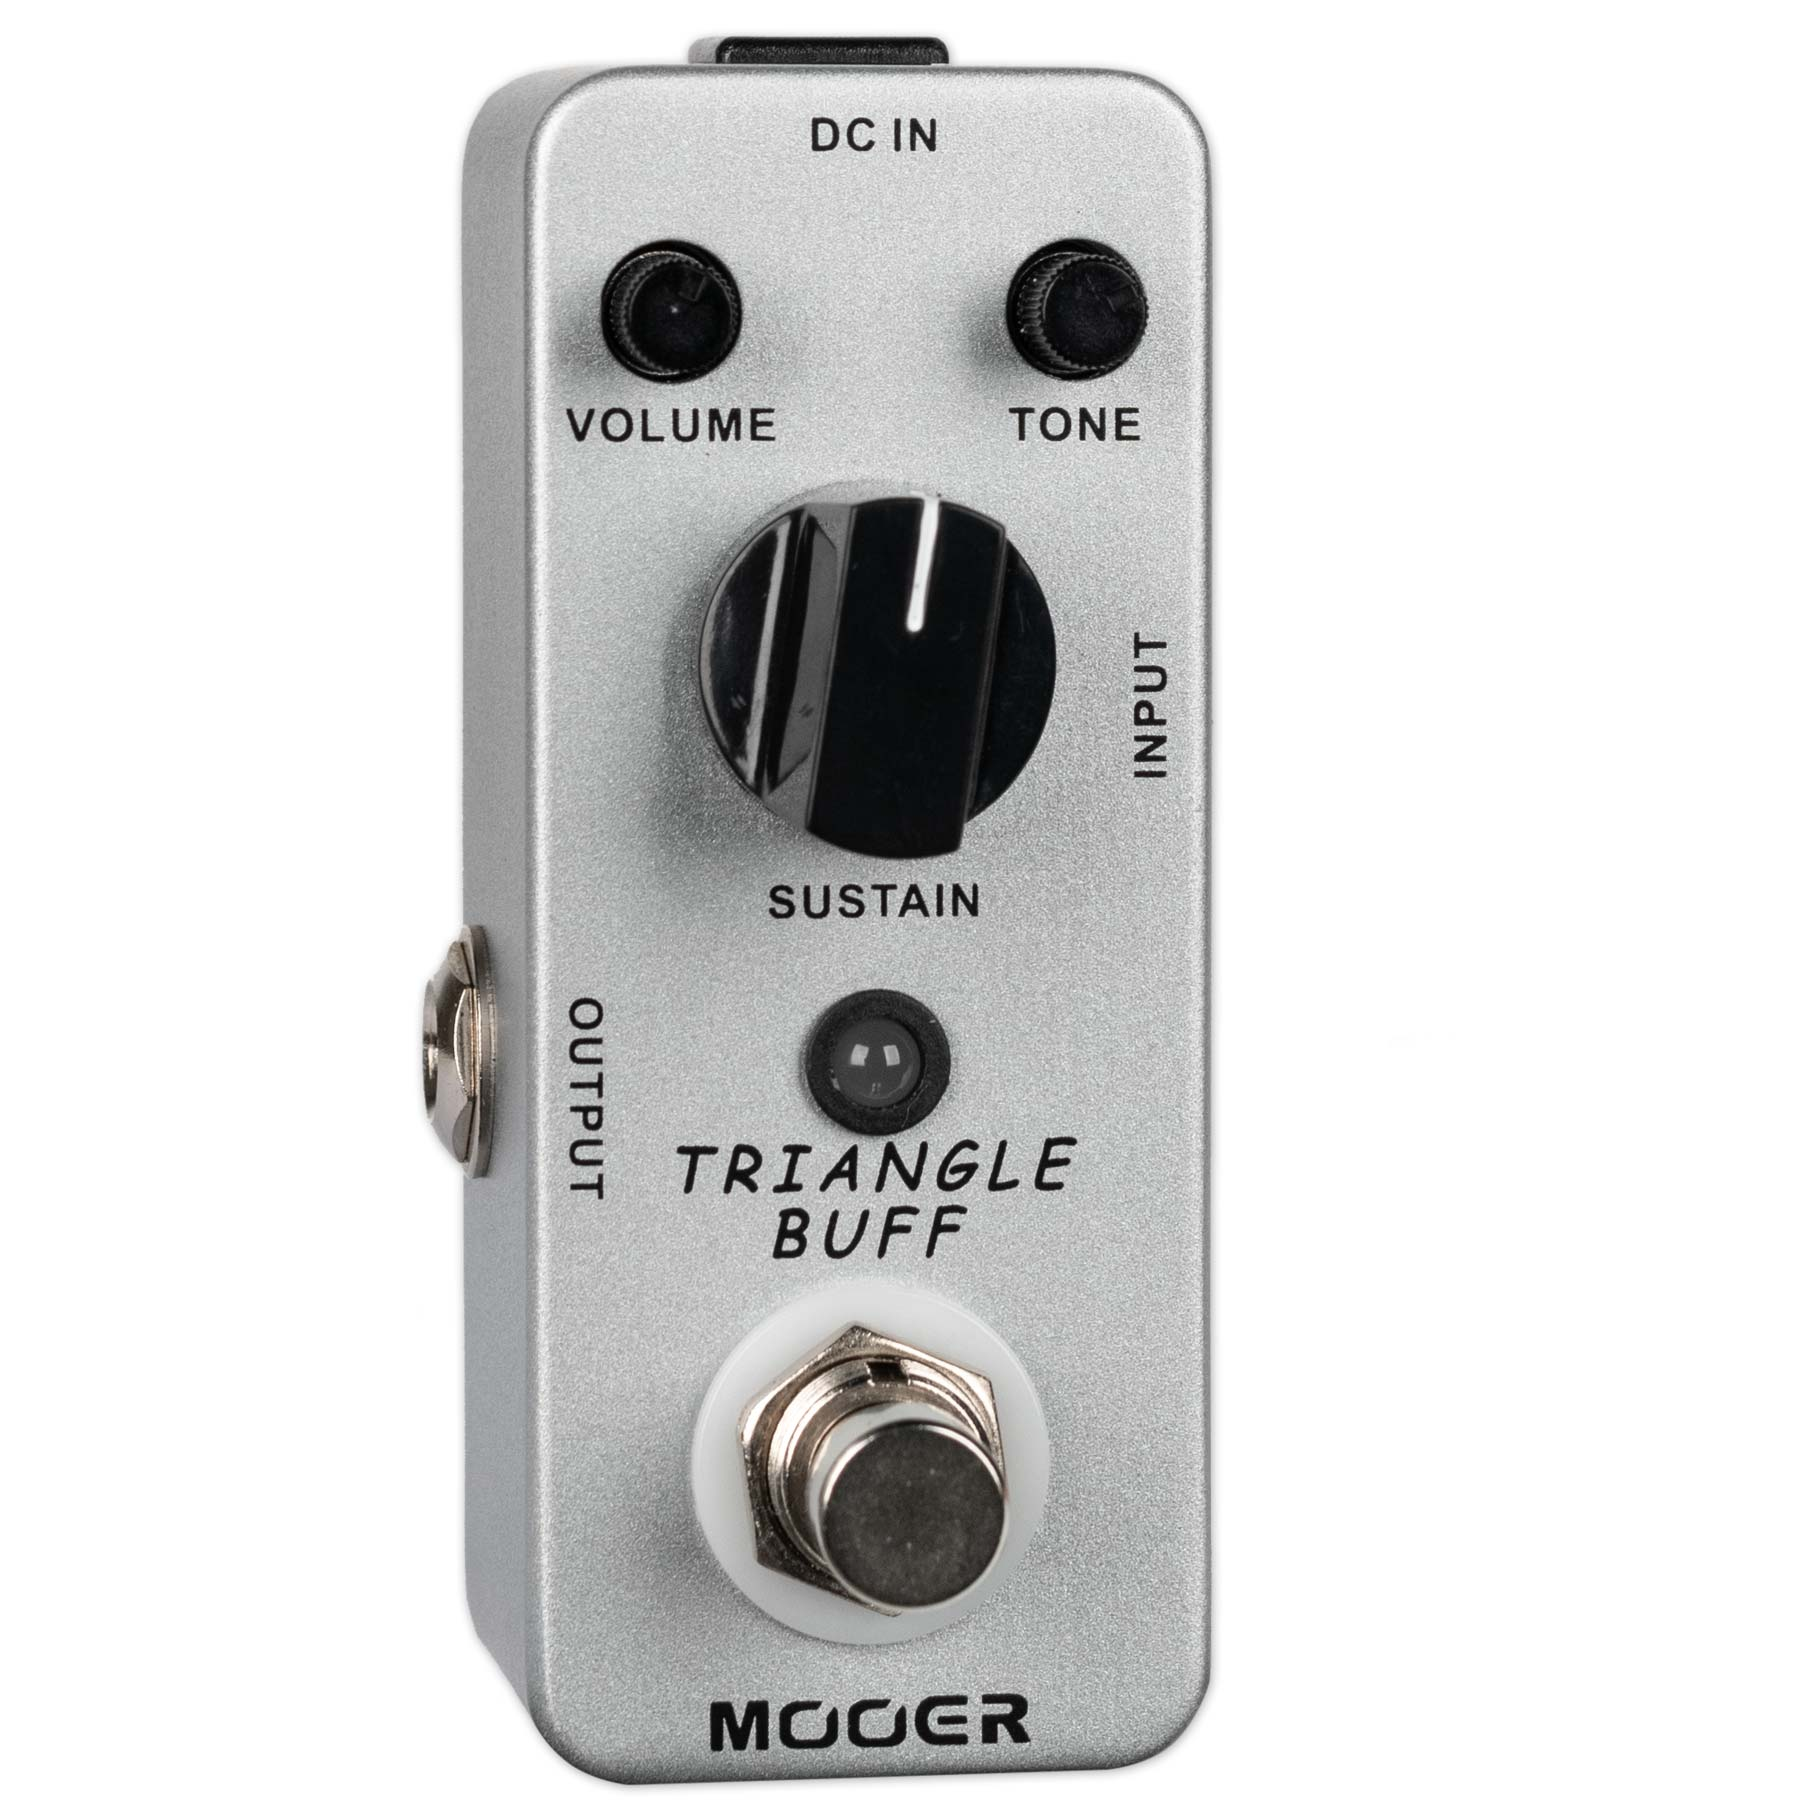 USED MOOER TRIANGLE BUFF WITH BOX